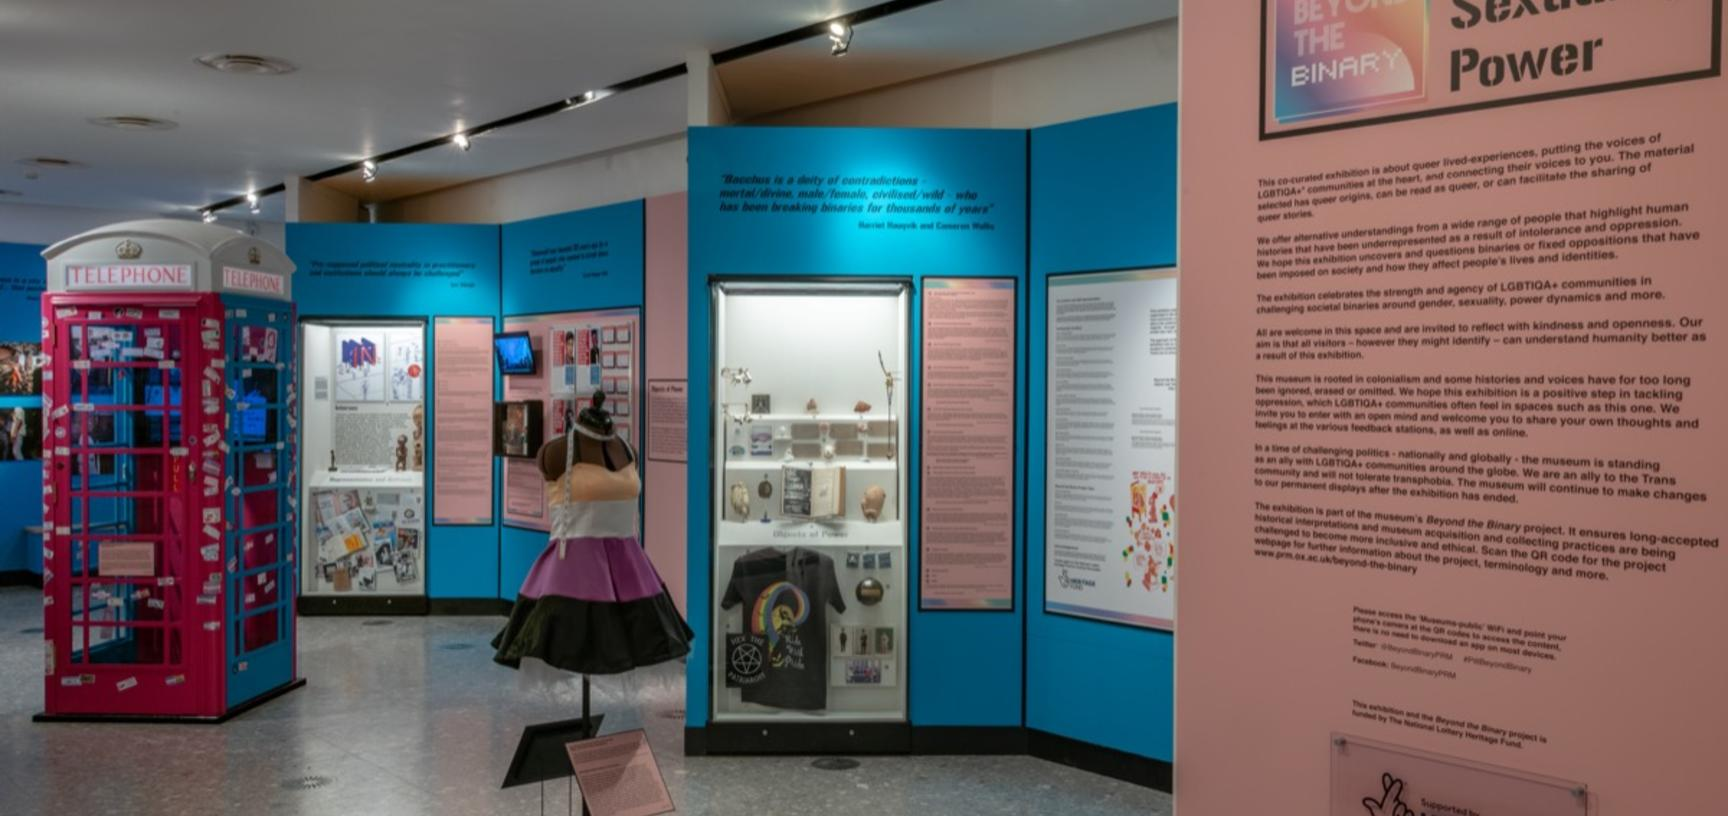 'Beyond the Binary: Gender, Sexuality, Power', Pitt Rivers Museum, University of Oxford, 1 June 2021 to 8 March 2022.